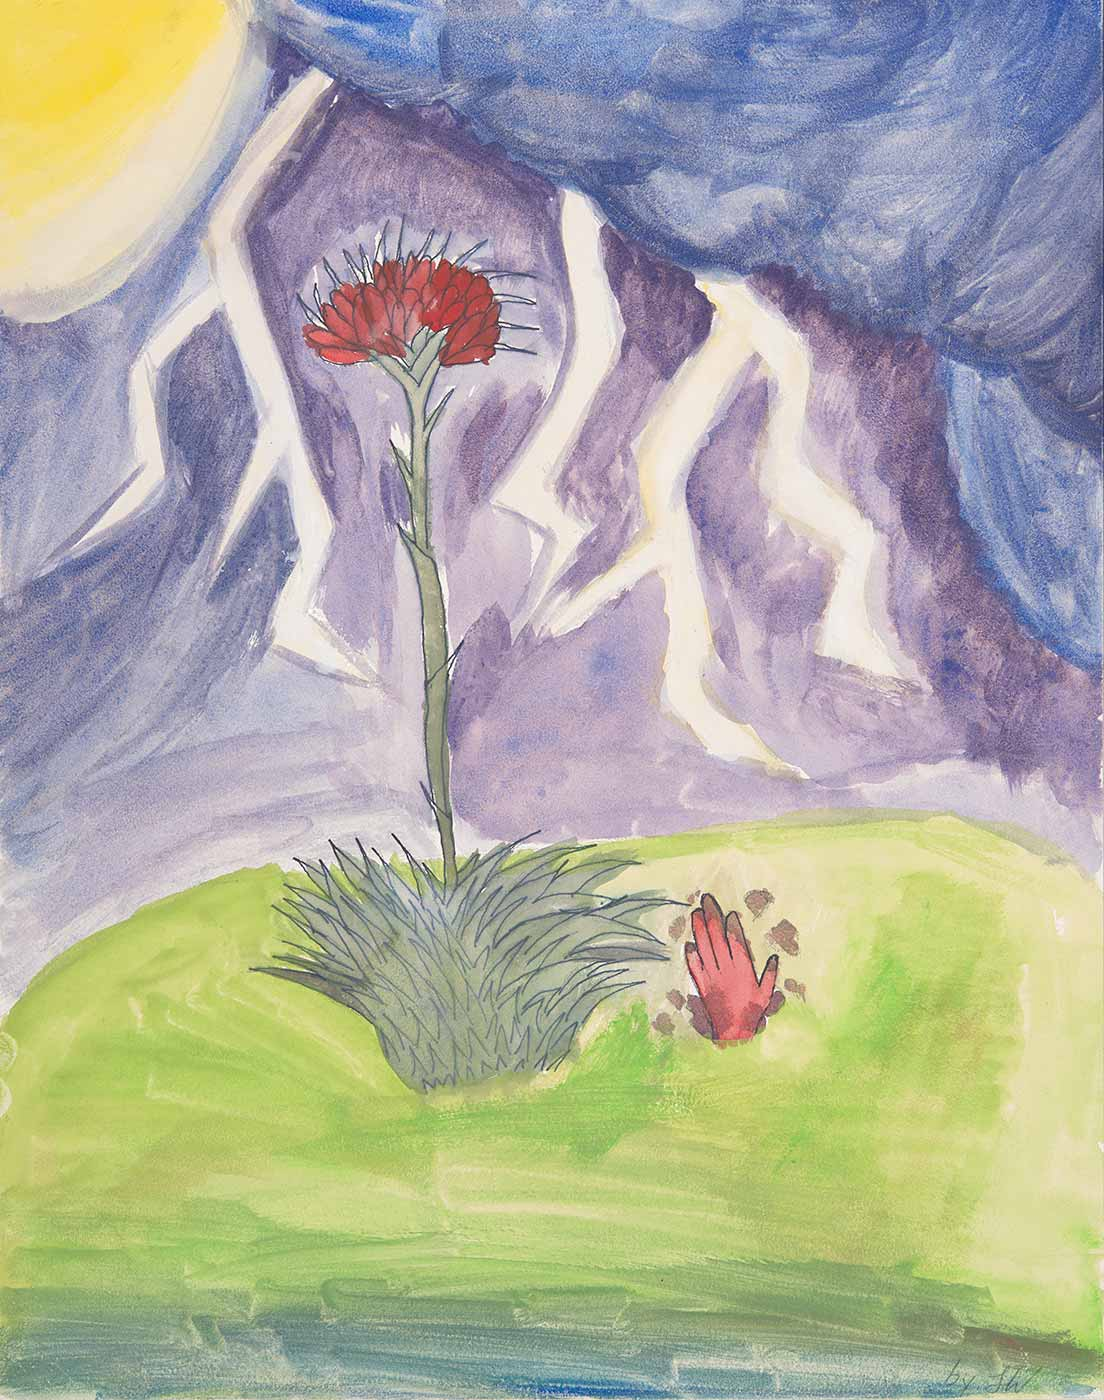 A child's painting depicting a red flower against a purple sky, with lightning. - click to view larger image